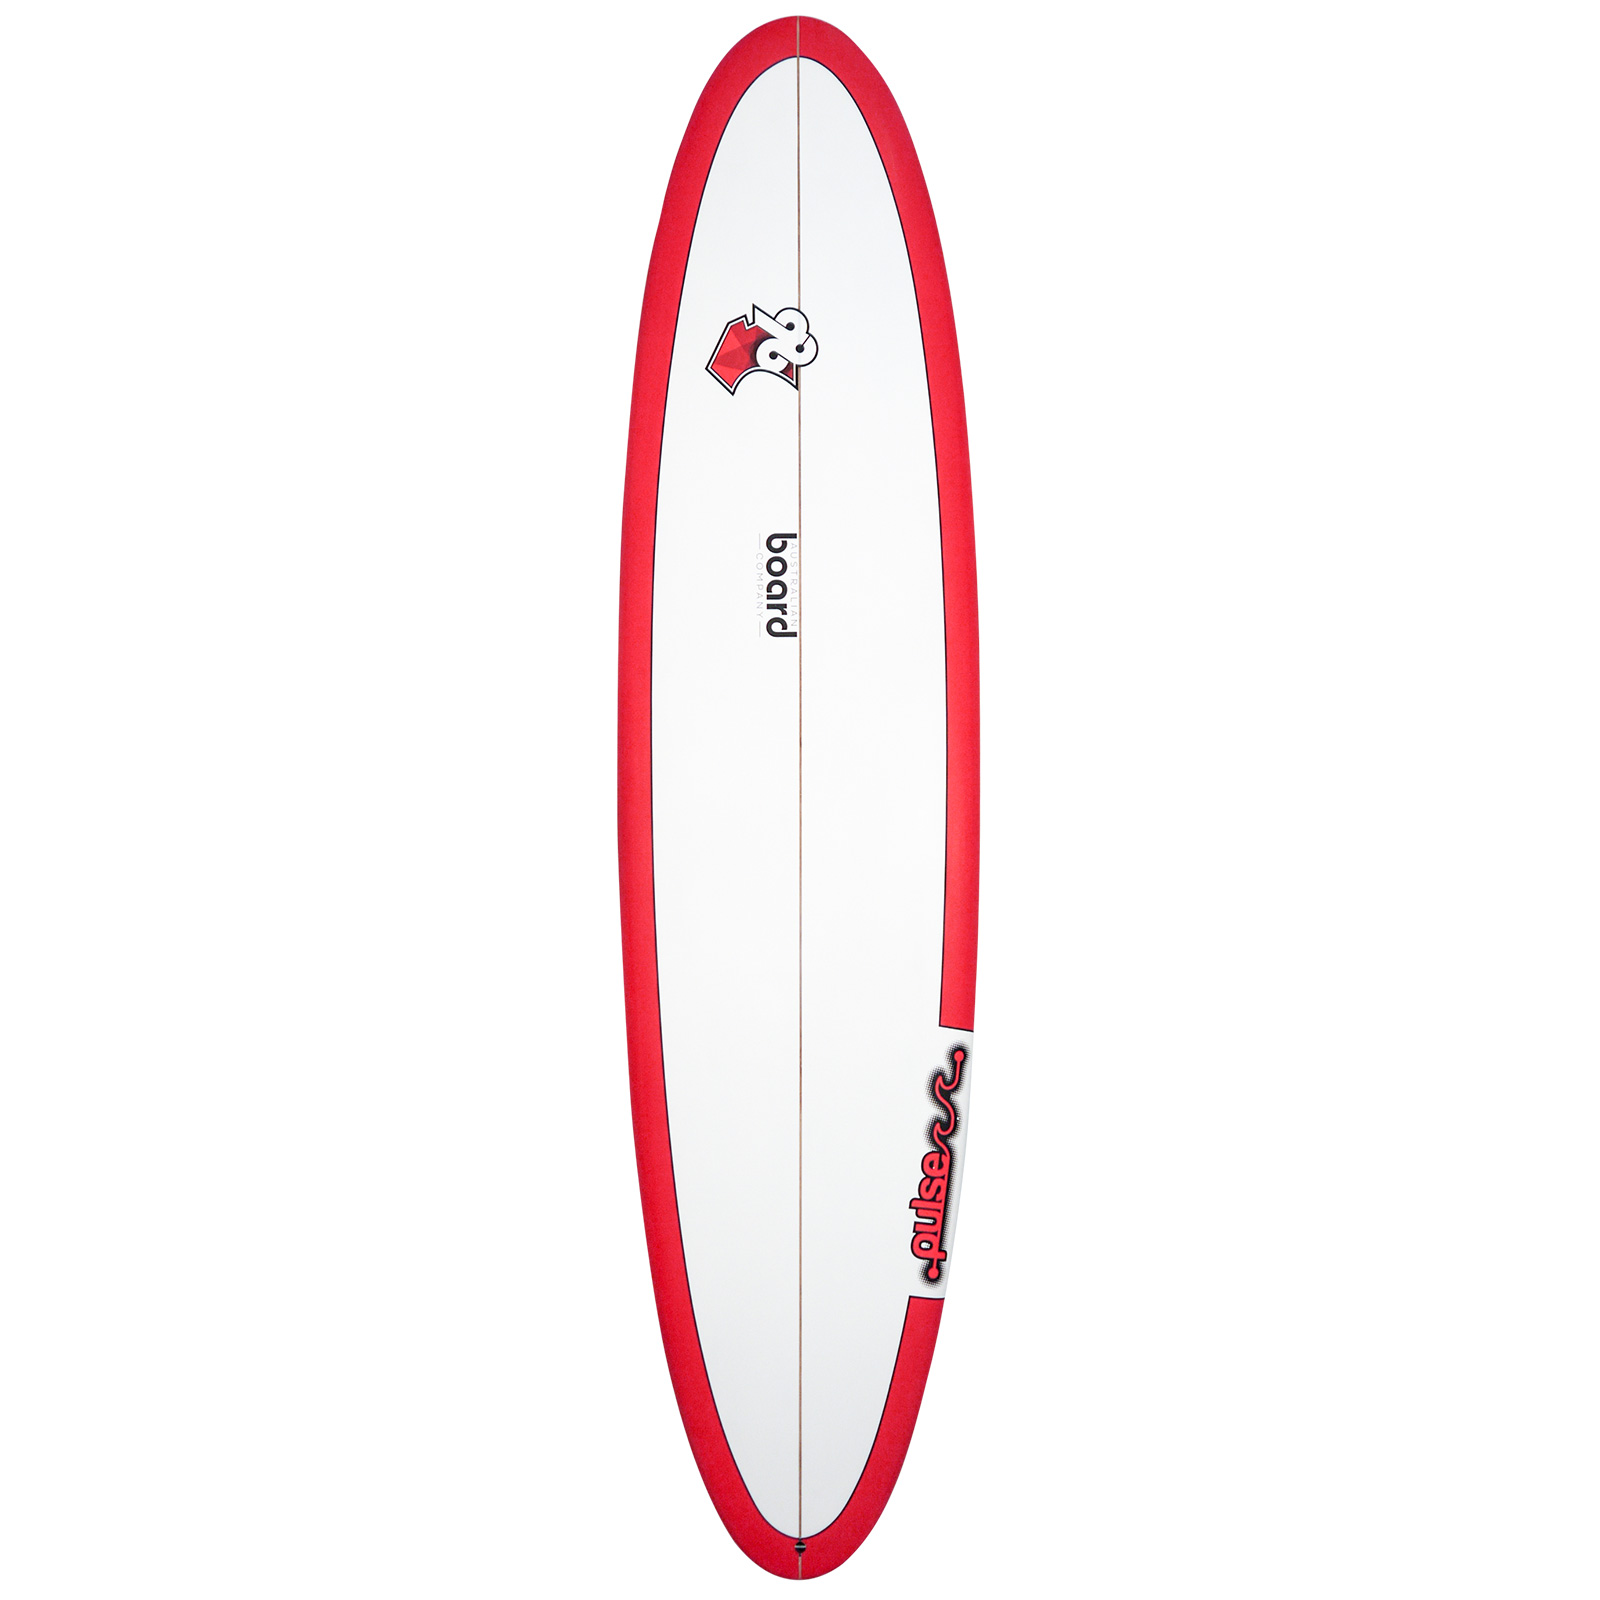 7ft 6inch Pulse Series Round Tail Mini Mal Surfboard by Australian Board Company (ABC) - Matt Finish